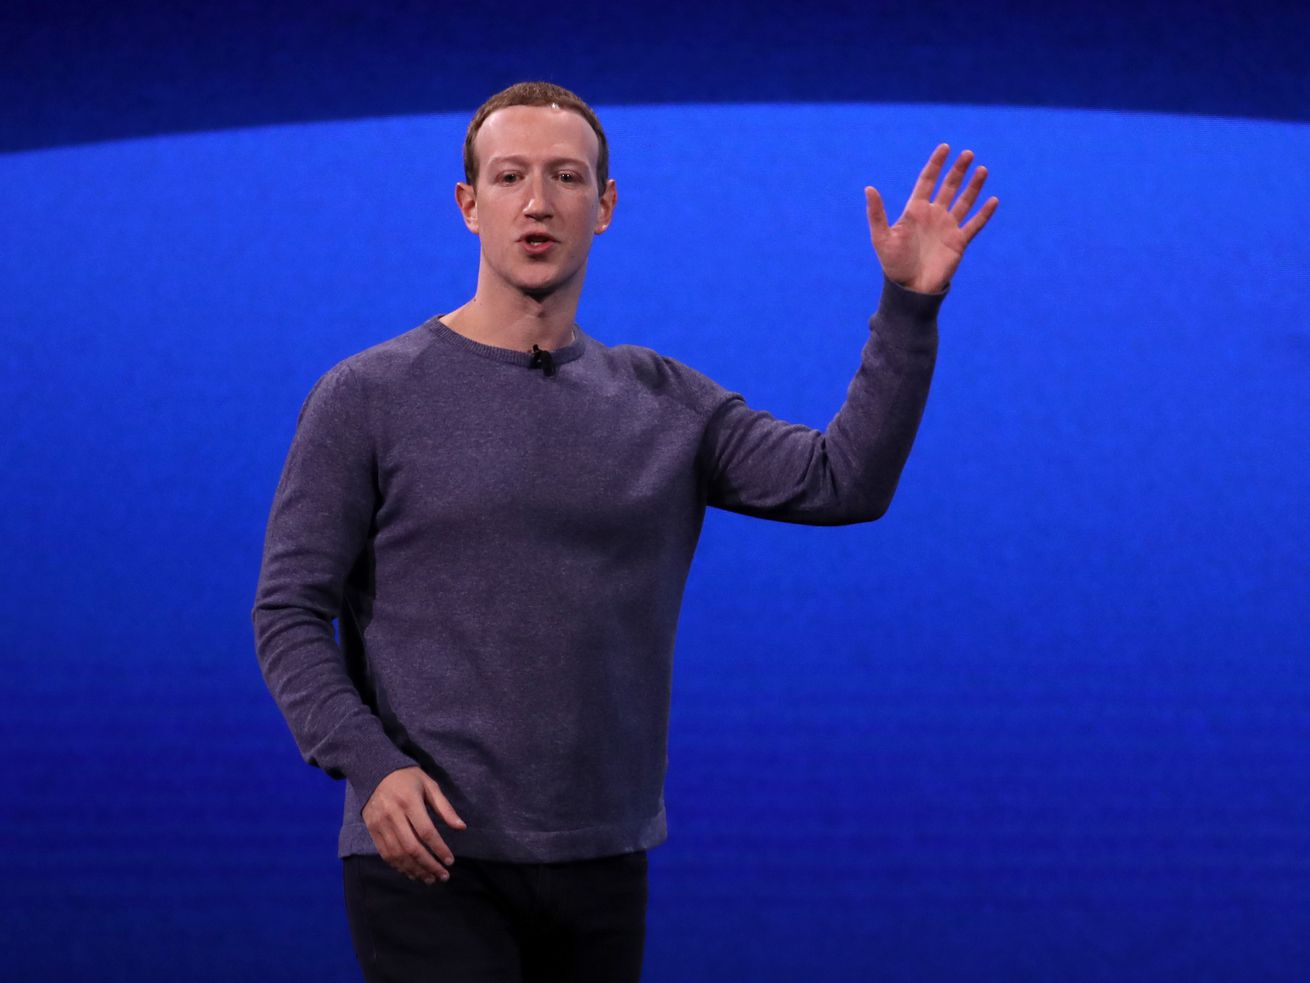 When Mark Zuckerberg gave $100 million to Newark's schools, he raised a big question: who will decide where this money goes? The answer: not the people of Newark.